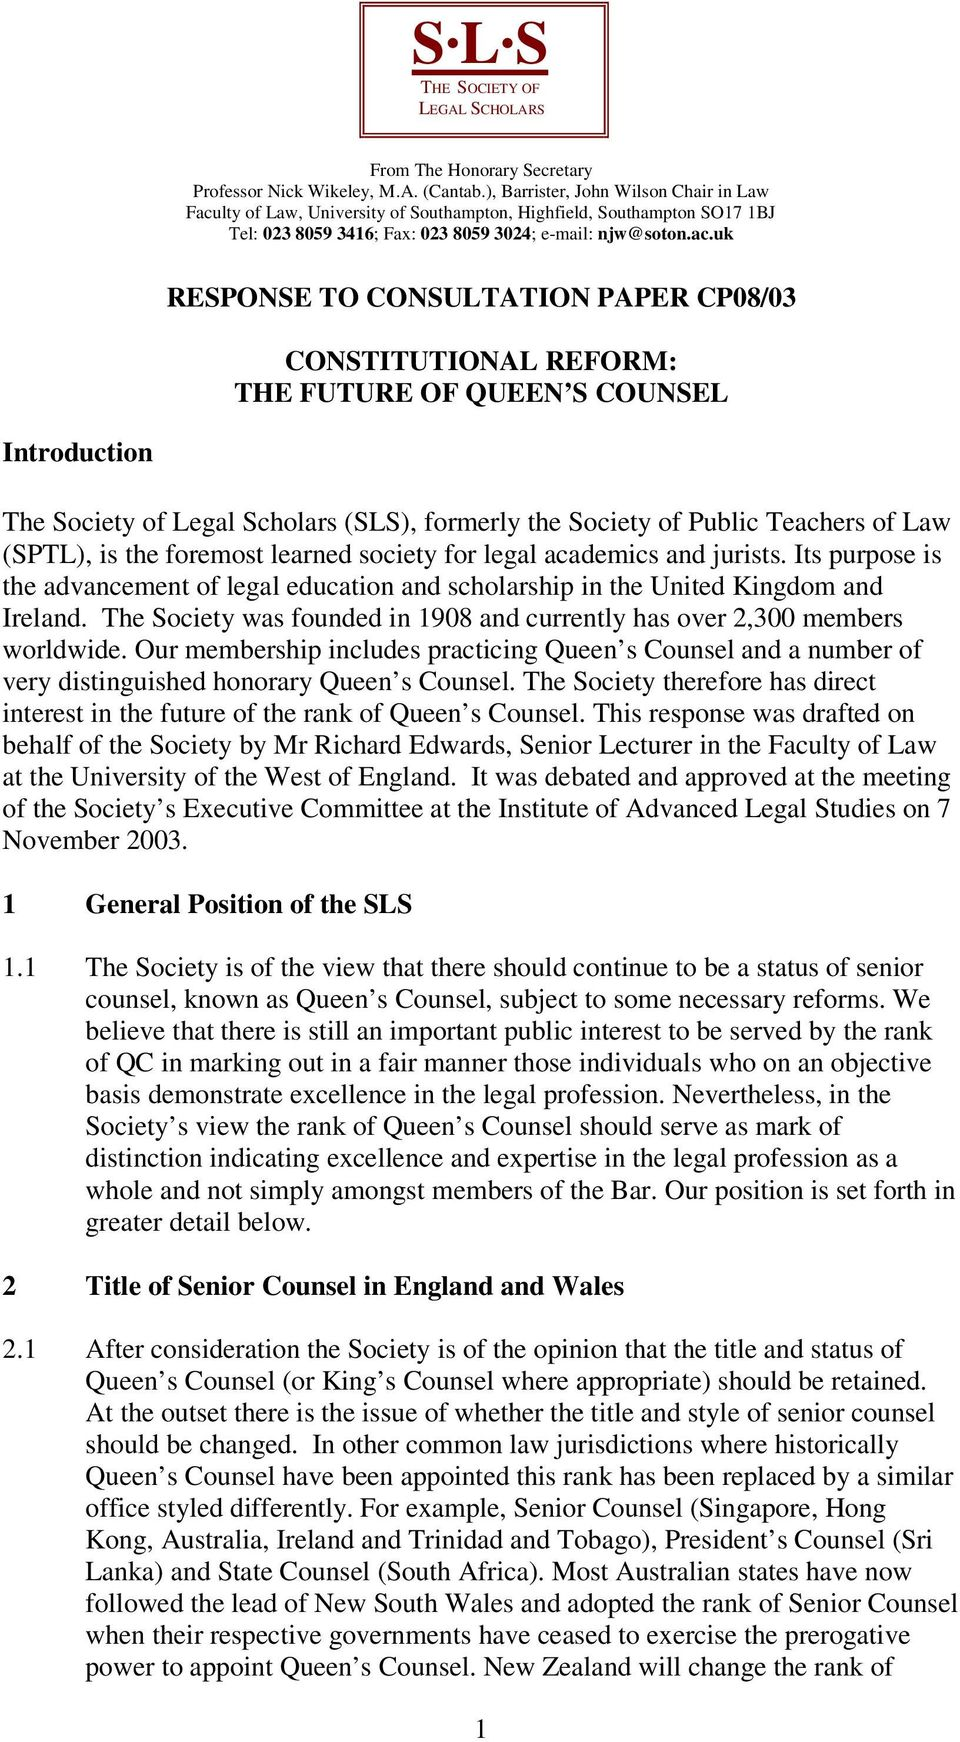 lty of Law, University of Southampton, Highfield, Southampton SO17 1BJ Tel: 023 8059 3416; Fax: 023 8059 3024; e-mail: njw@soton.ac.